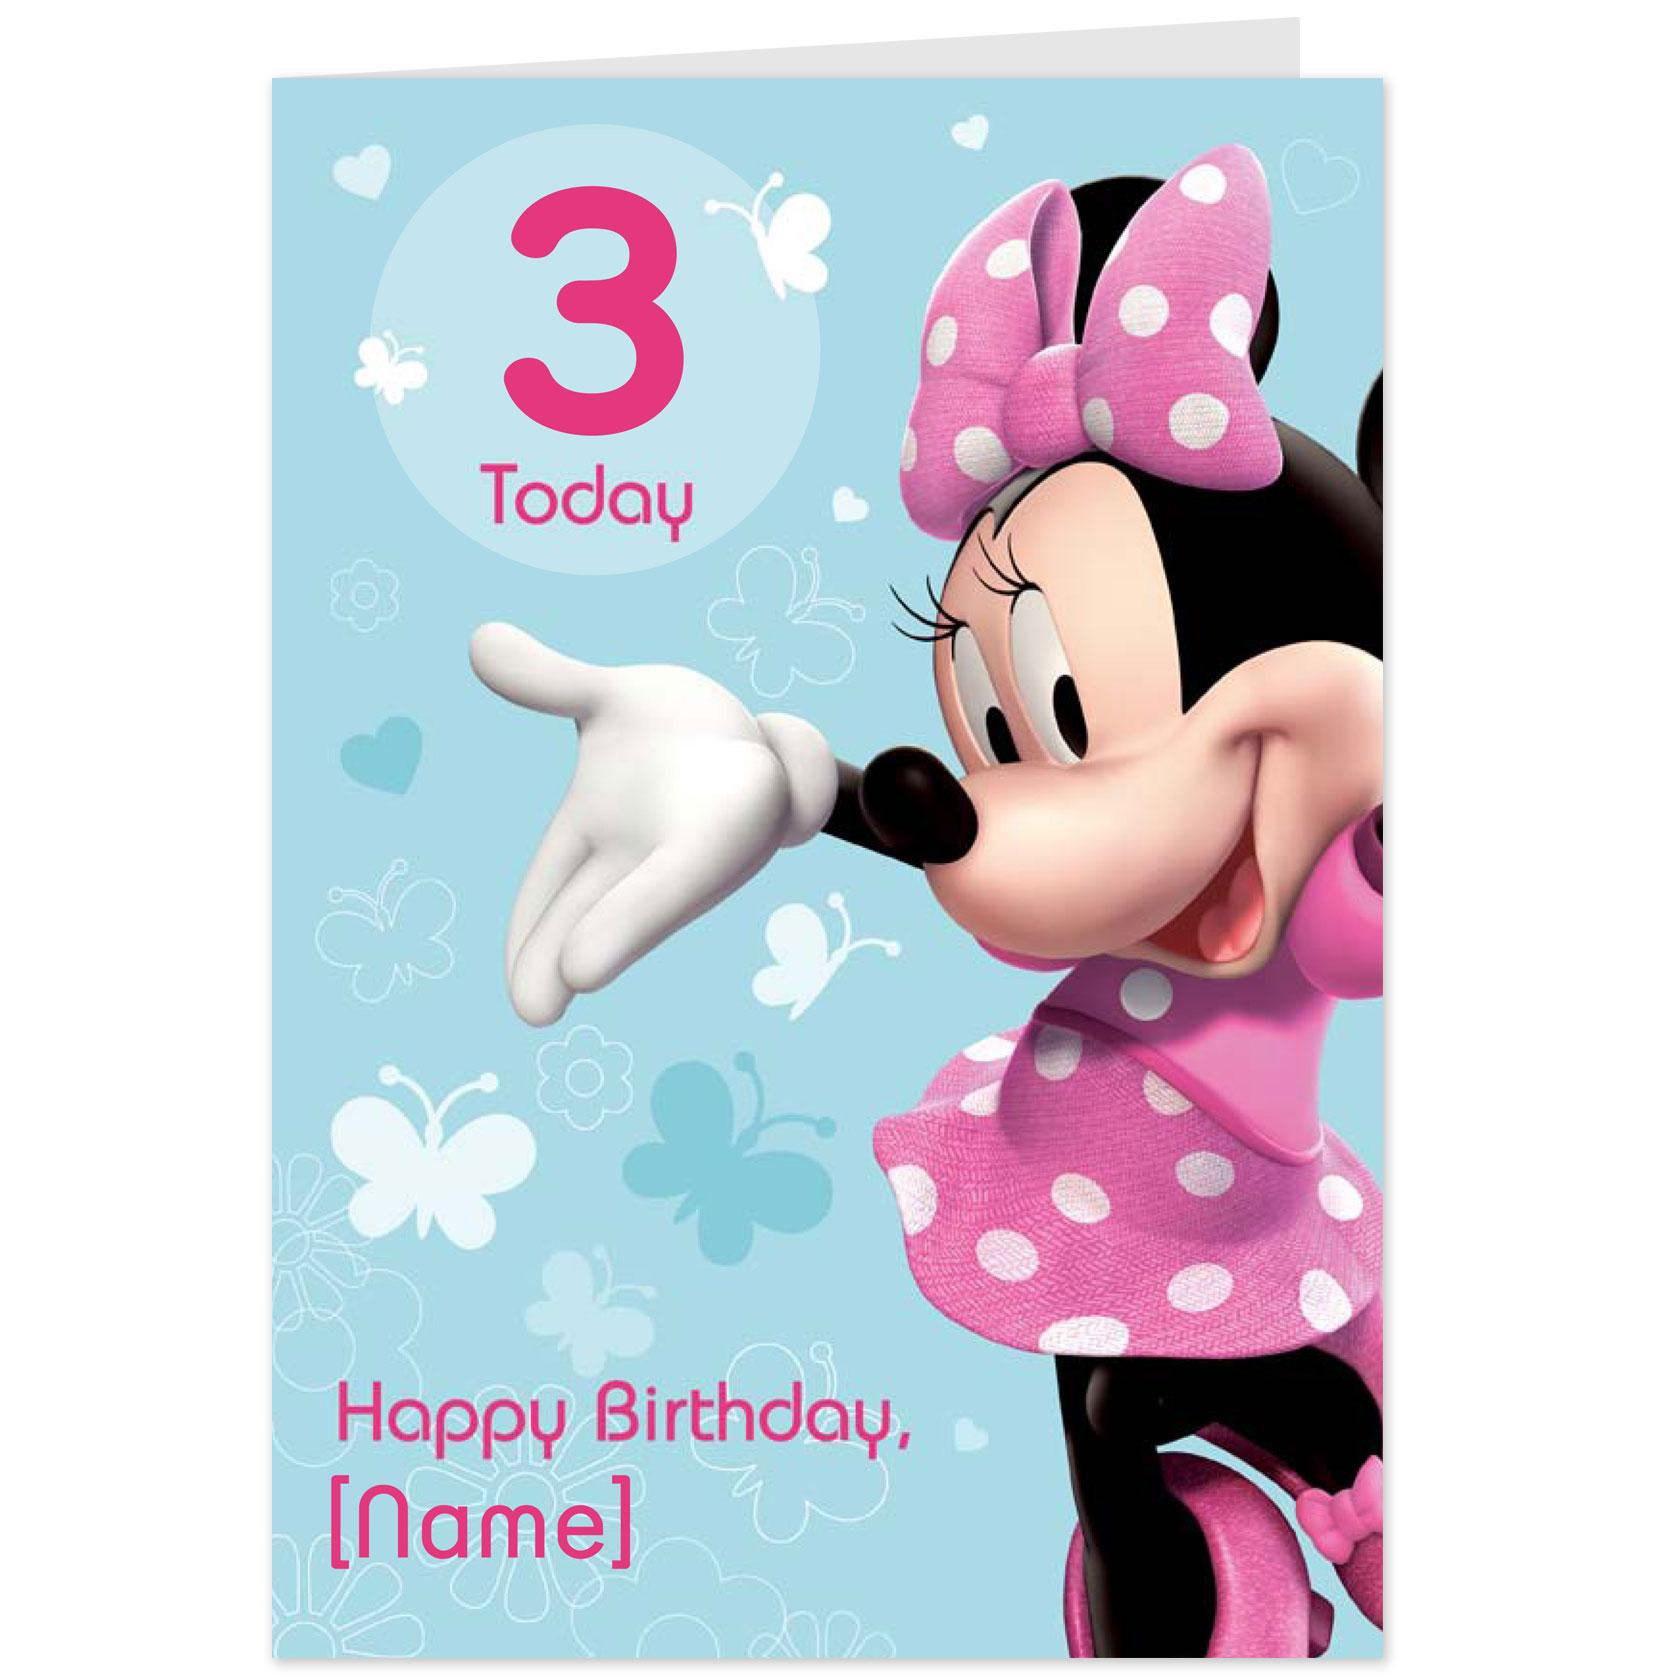 8 Best Images of Minnie Mouse Printable Birthday Cards ...